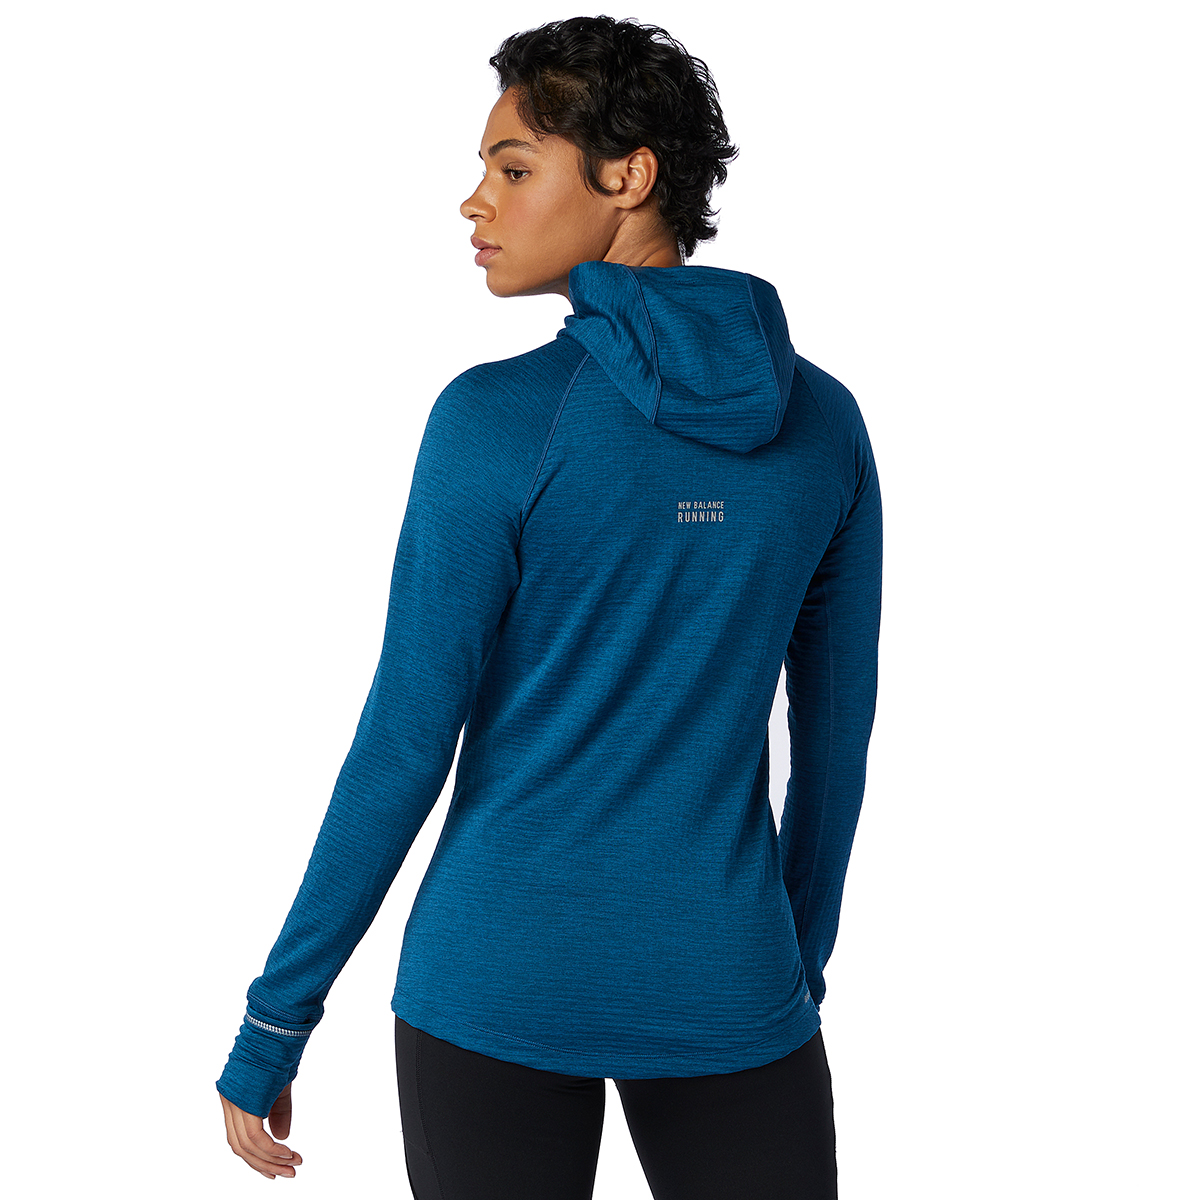 Women's New Balance Heat Grid Hoodie - Color: Rogue Wave - Size: XS, Rogue Wave, large, image 5